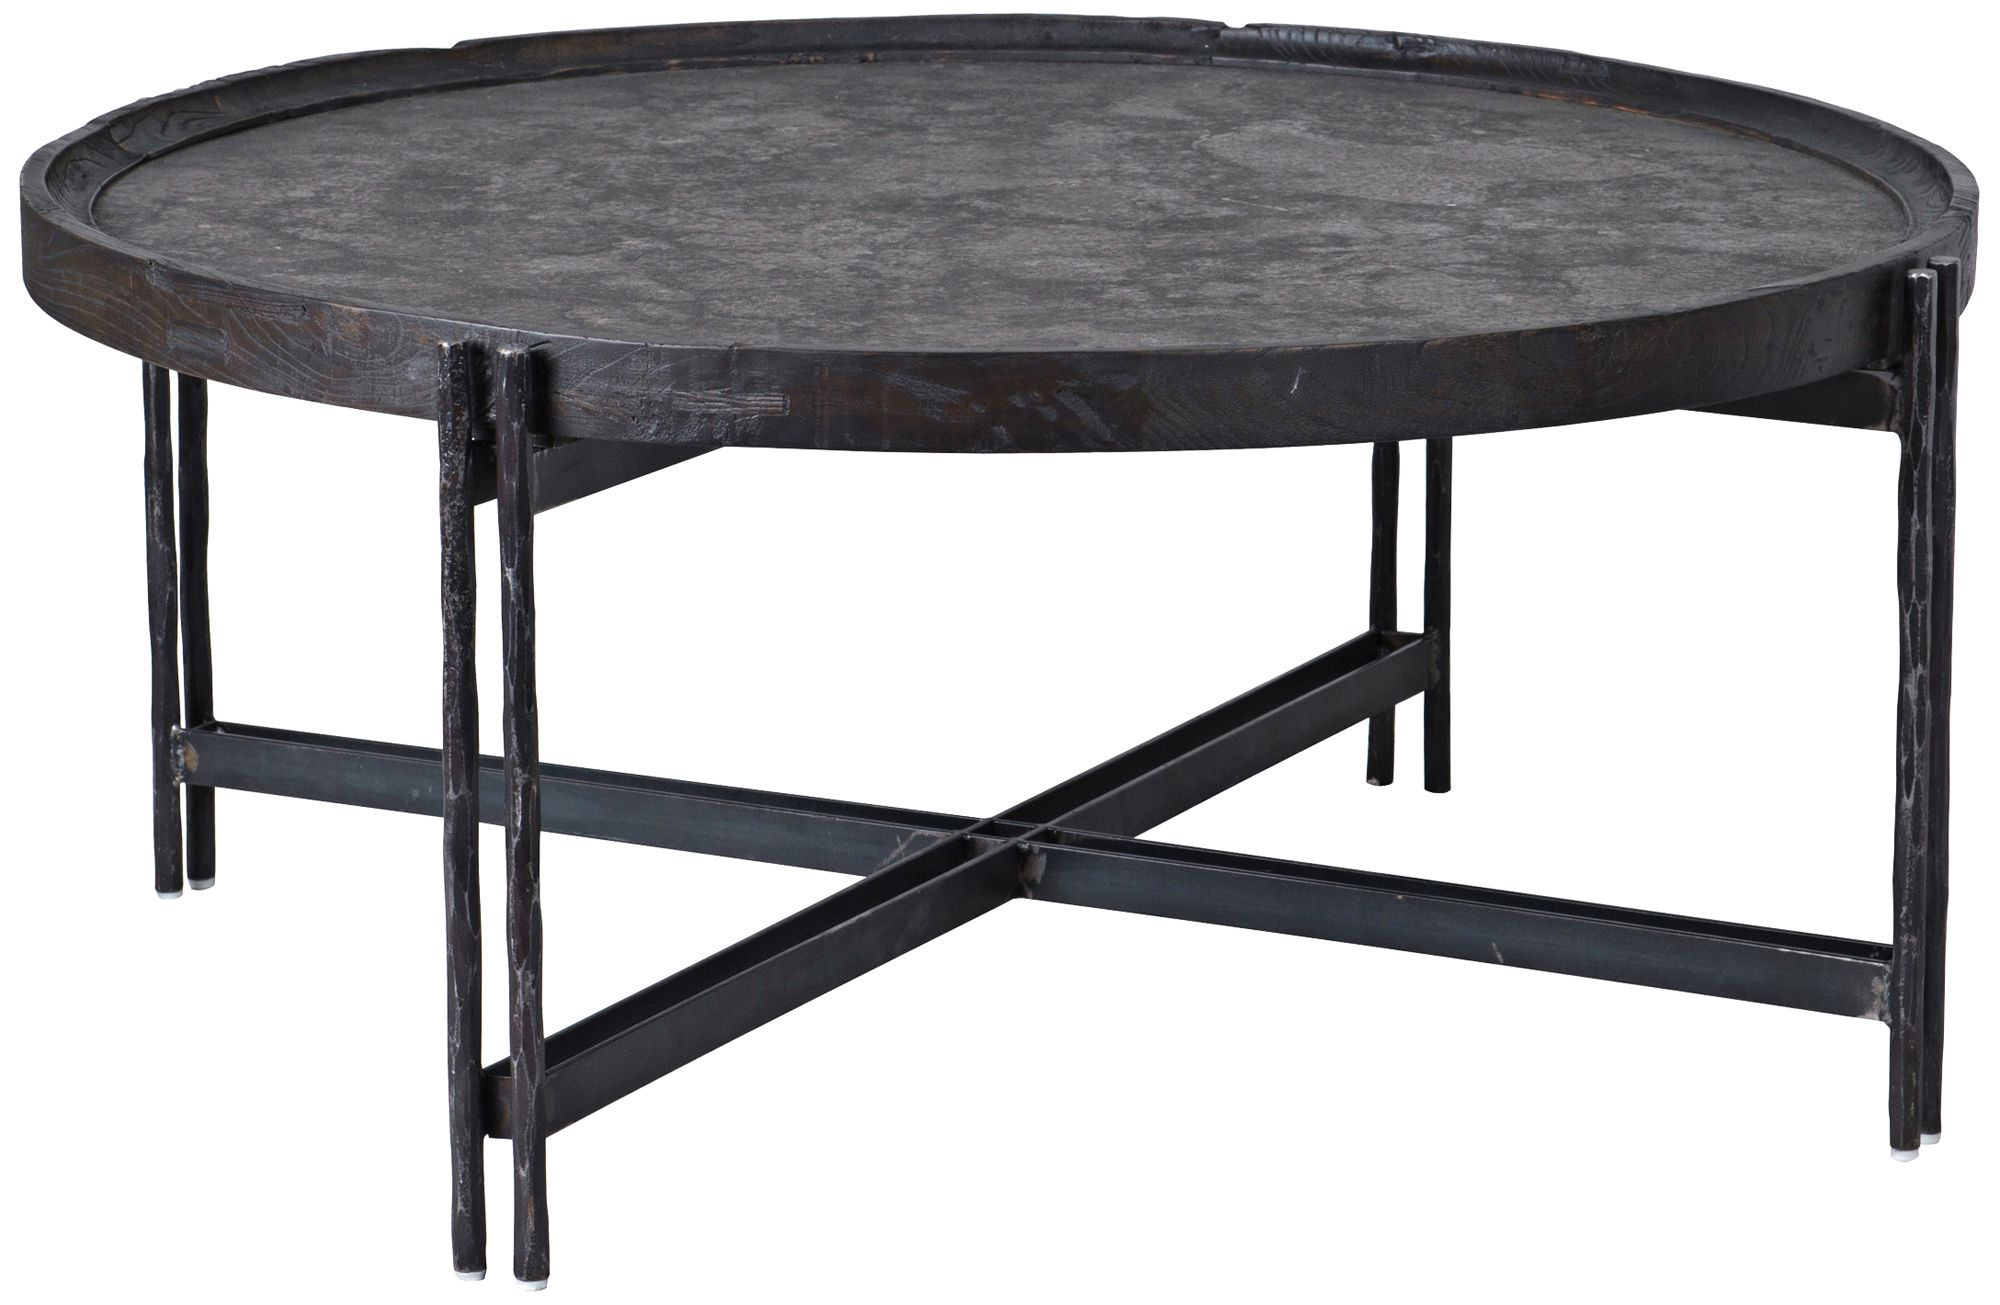 melvin black iron and wood round coffee table